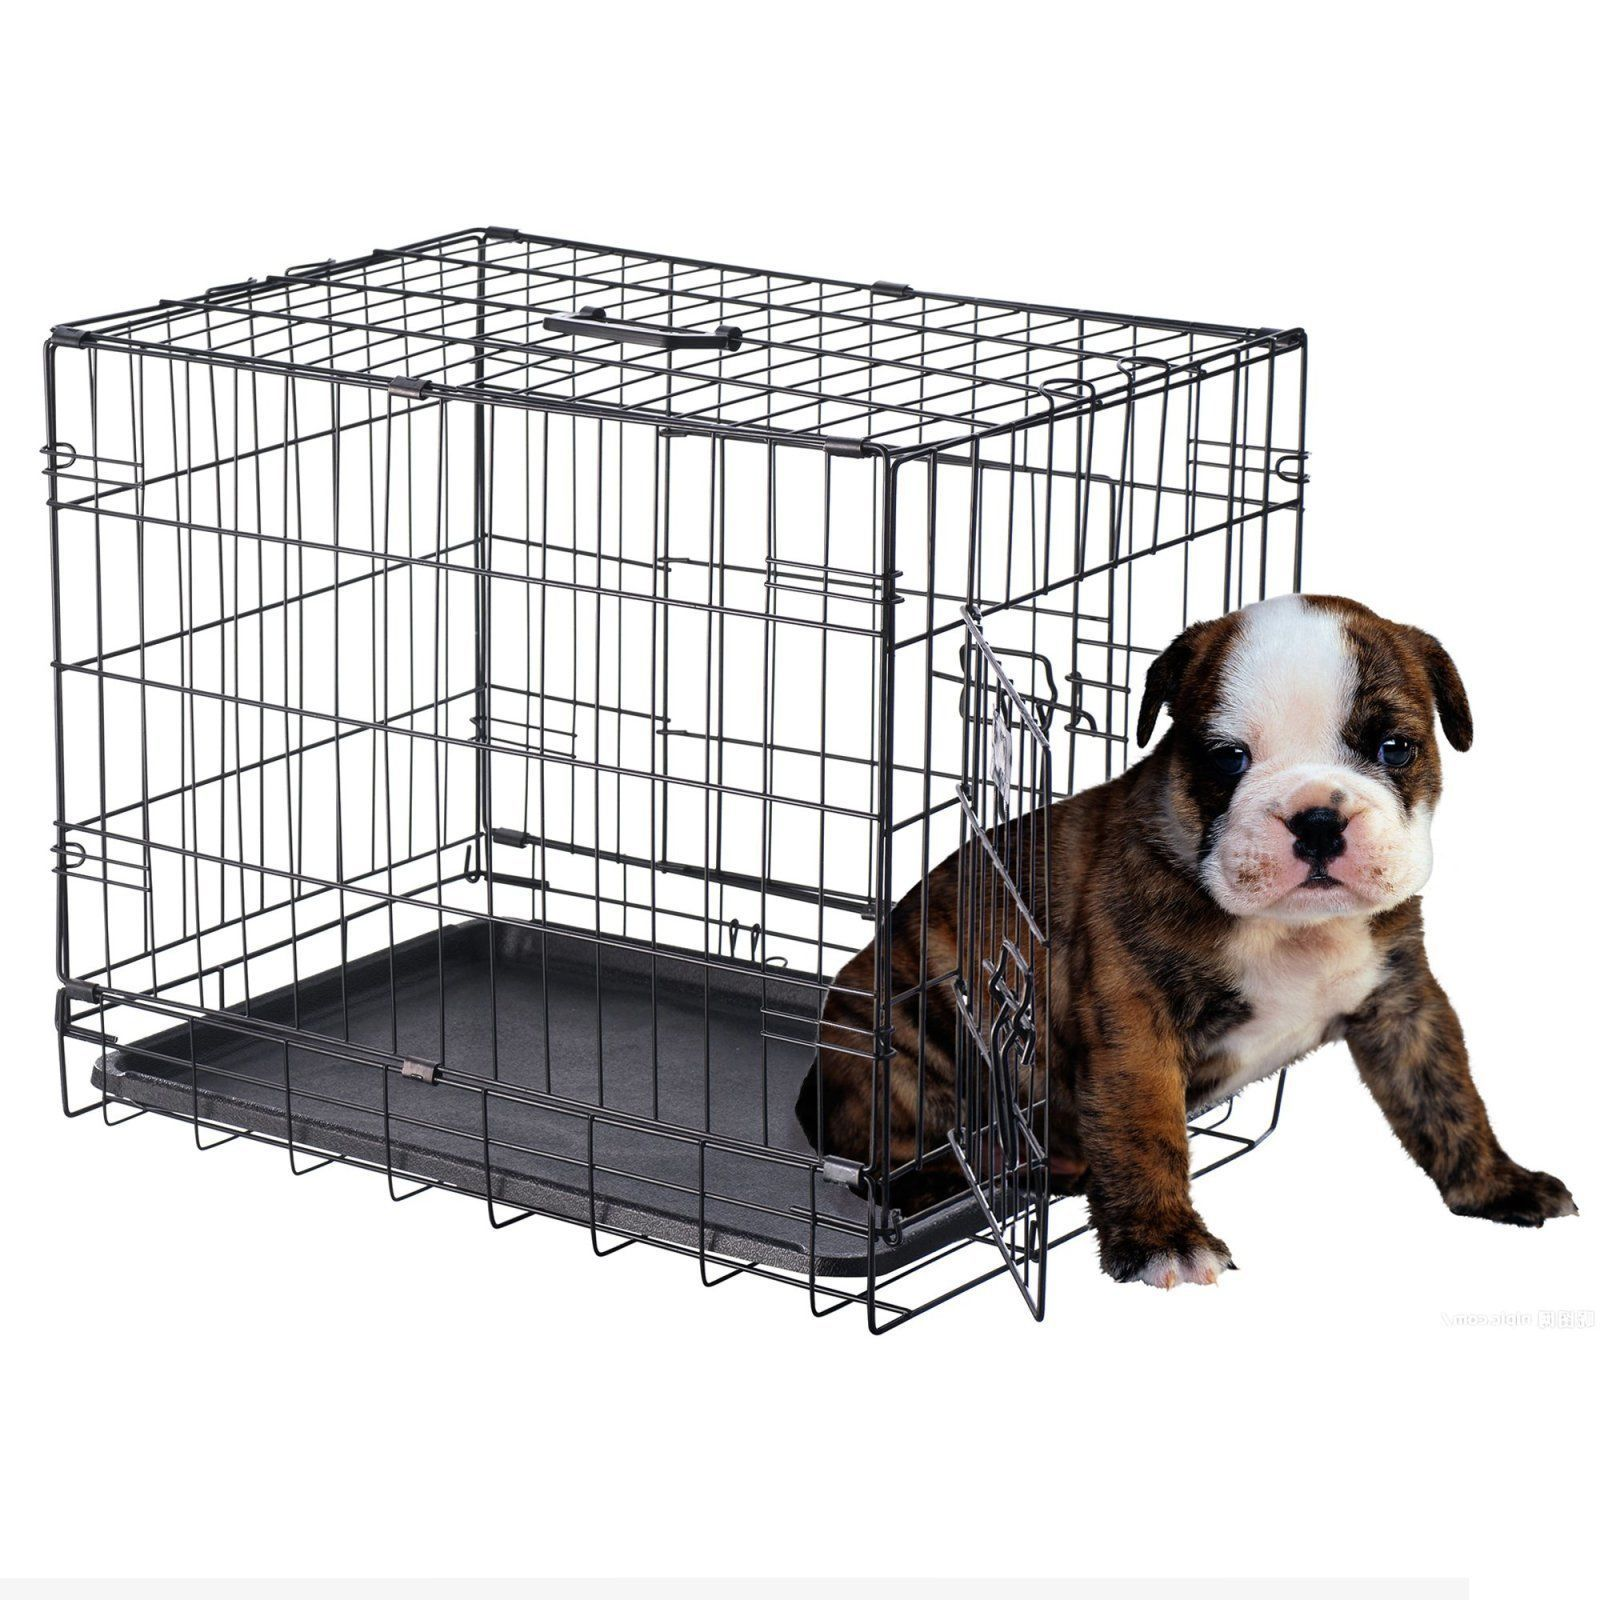 pet trex 24 inch pet crate folding pet crate kennel for dogs cats or rabbits 24 pet supplies near me